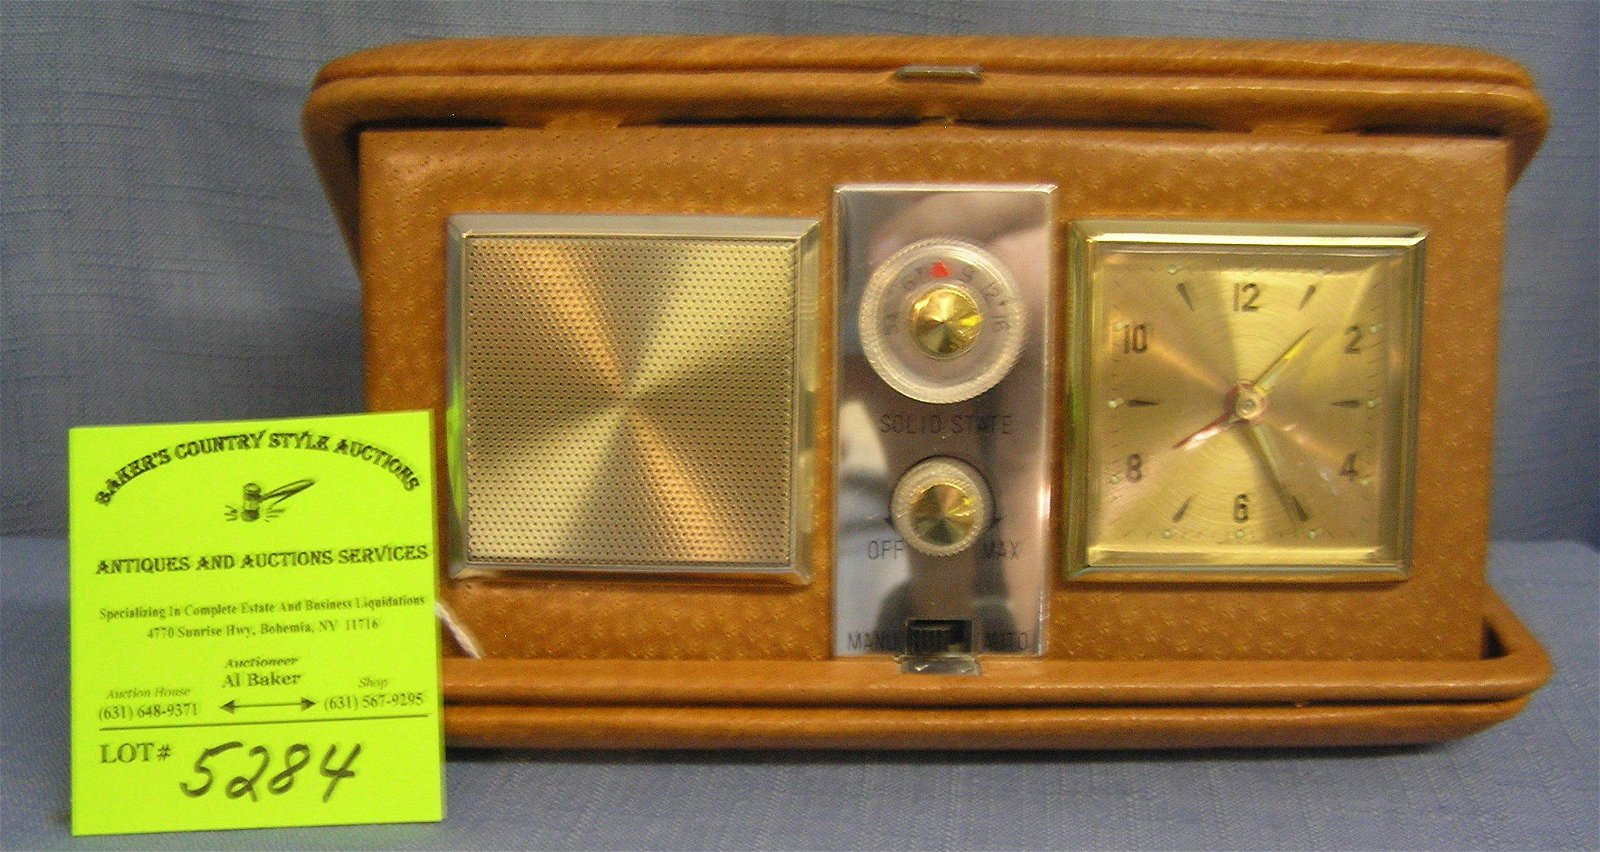 Vintage portable radio and alarm clock